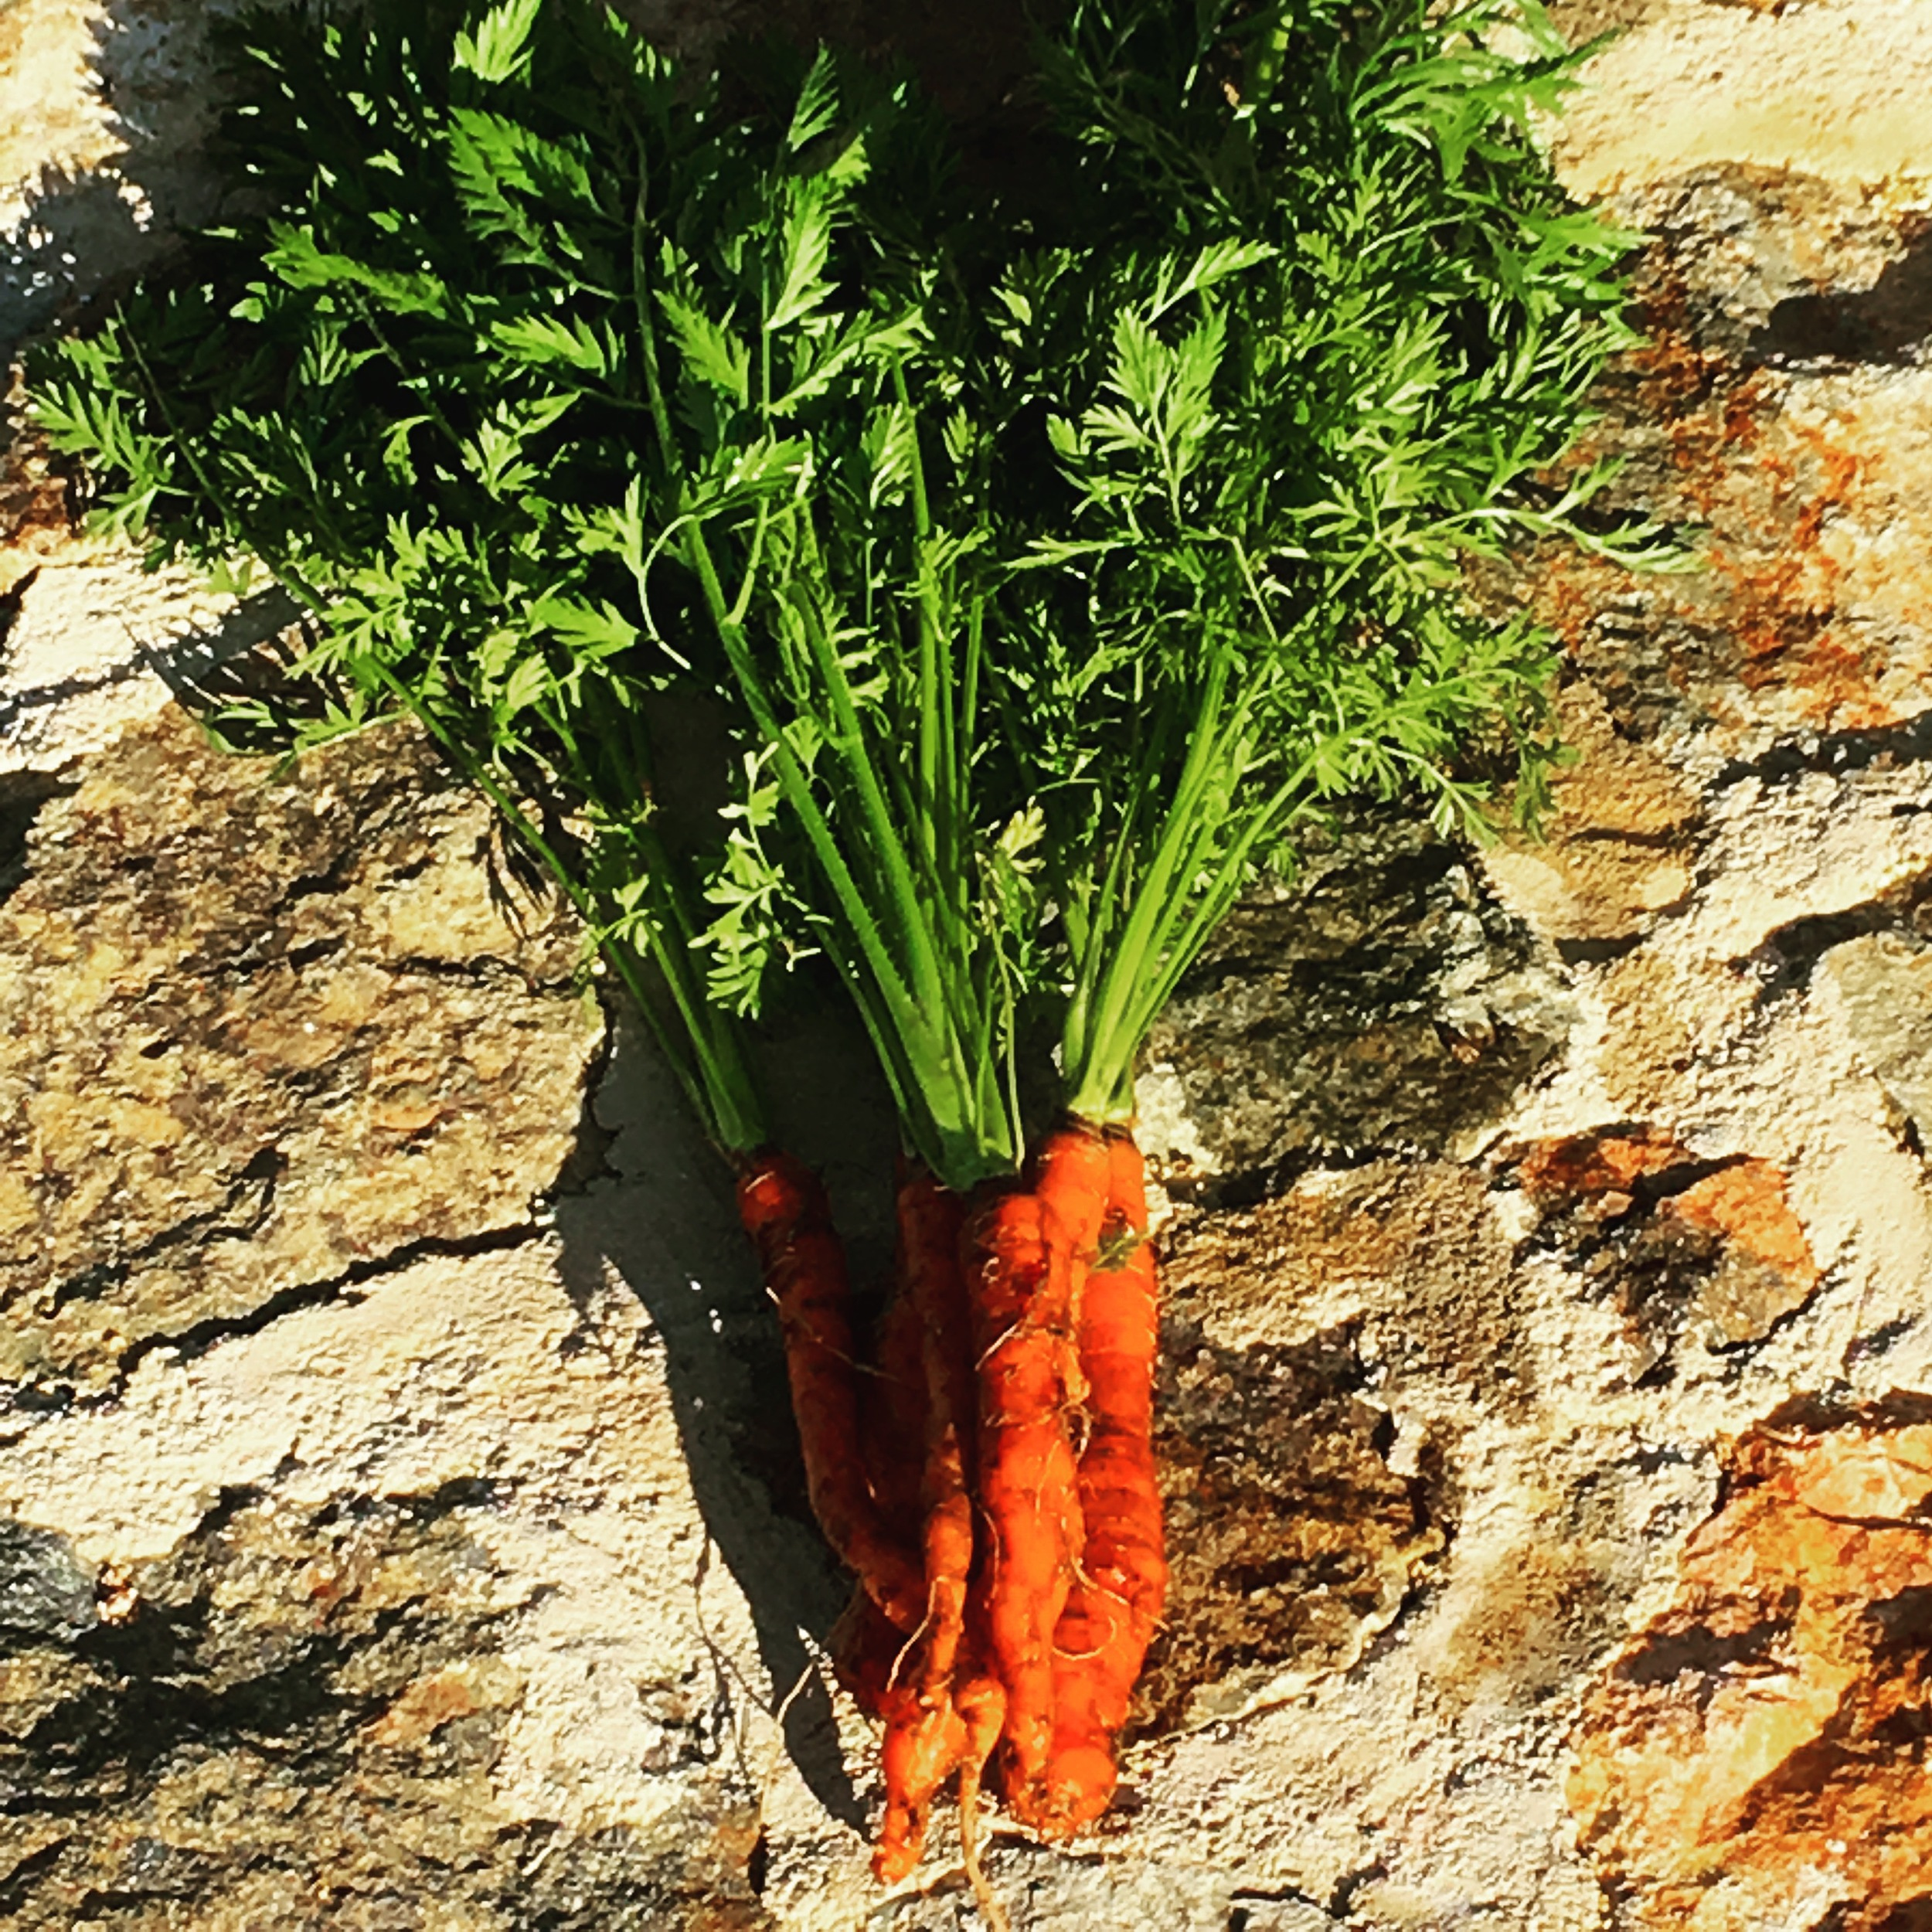 Spring is here! Freshly picked carrots from the garden.